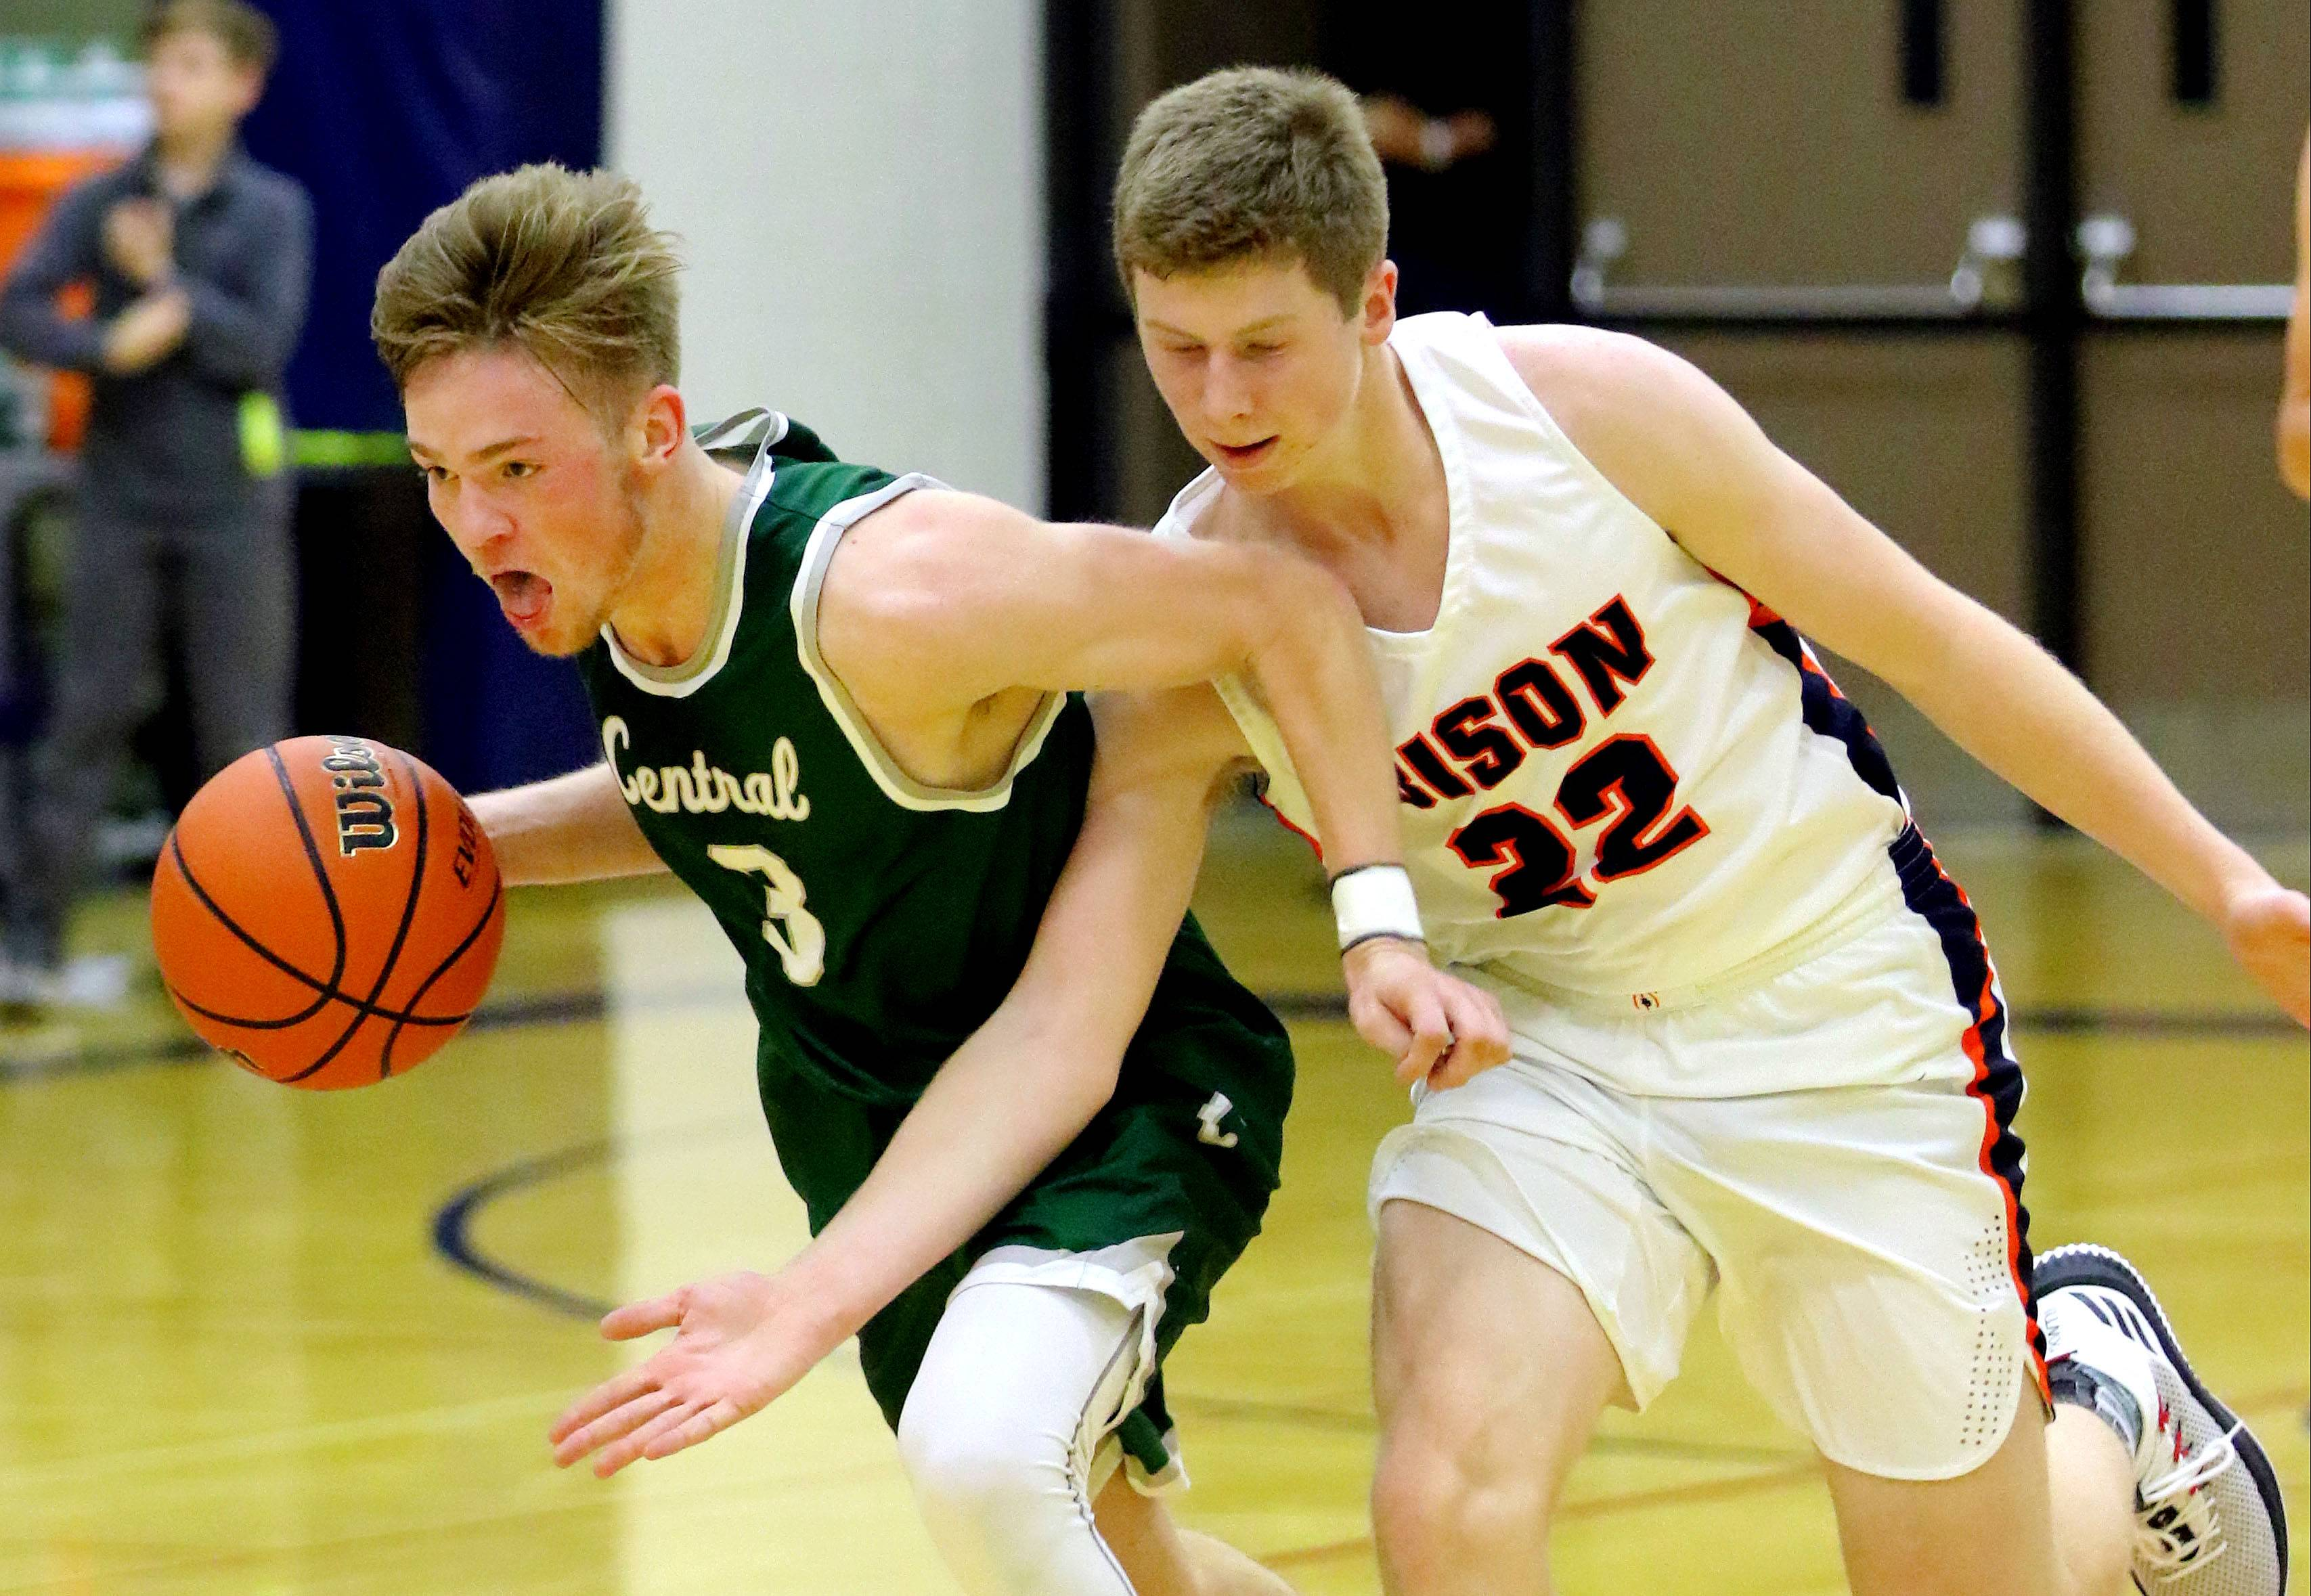 Grayslake Central's Alec Novak, left, drives past Buffalo Grove's Nathan Cole on Monday night at Buffalo Grove.